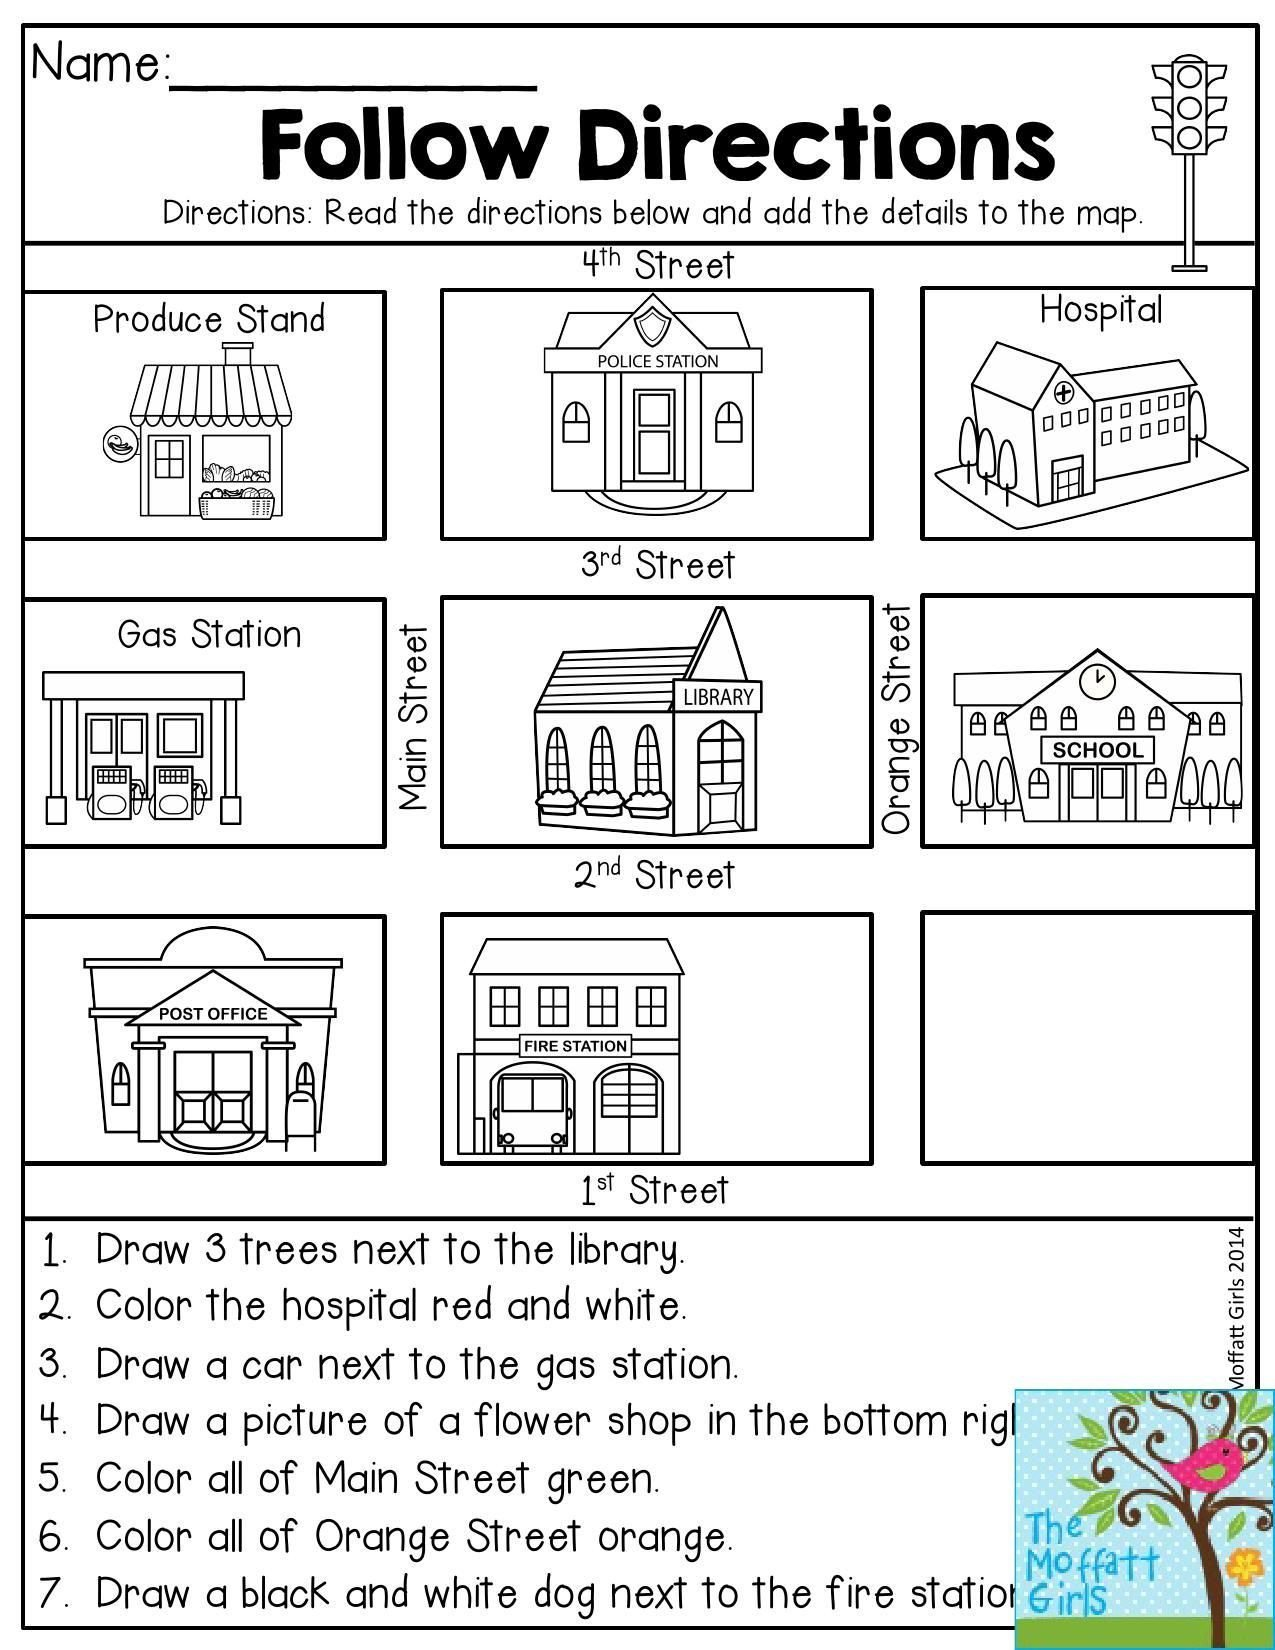 20 Following Directions Worksheets For Kindergarten